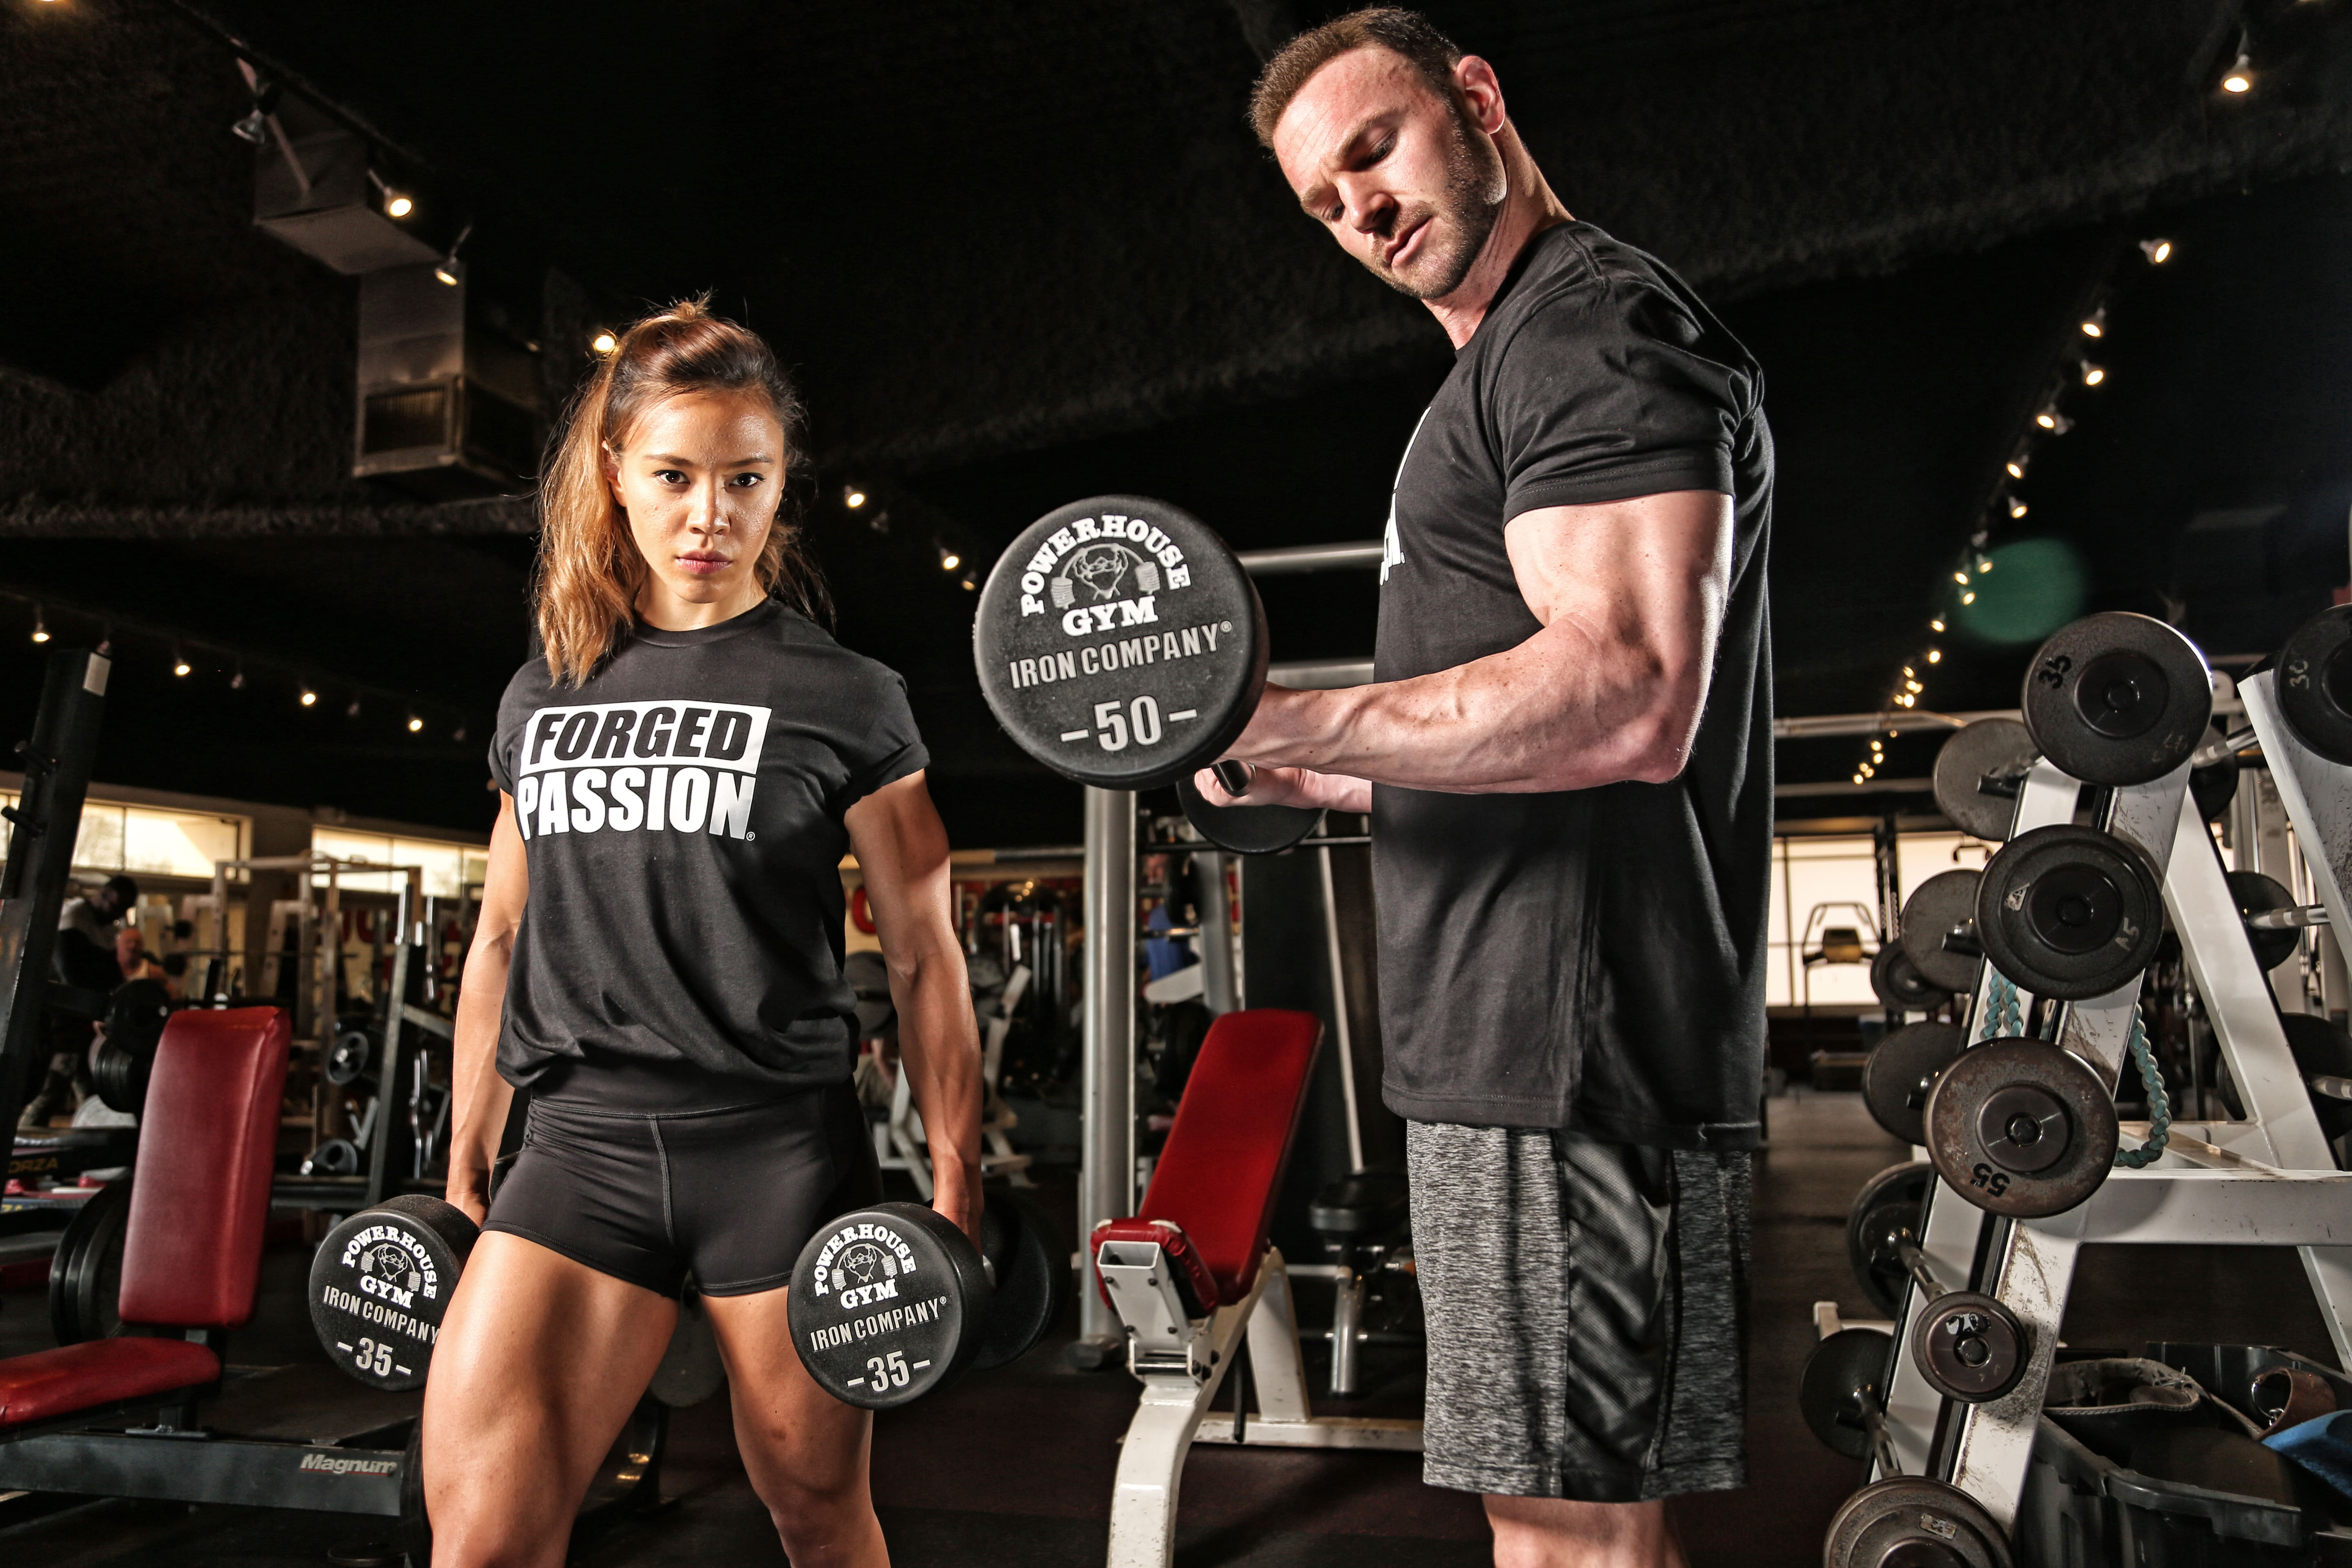 Bodybuilder exercises pump up the muscle for maximum growth.